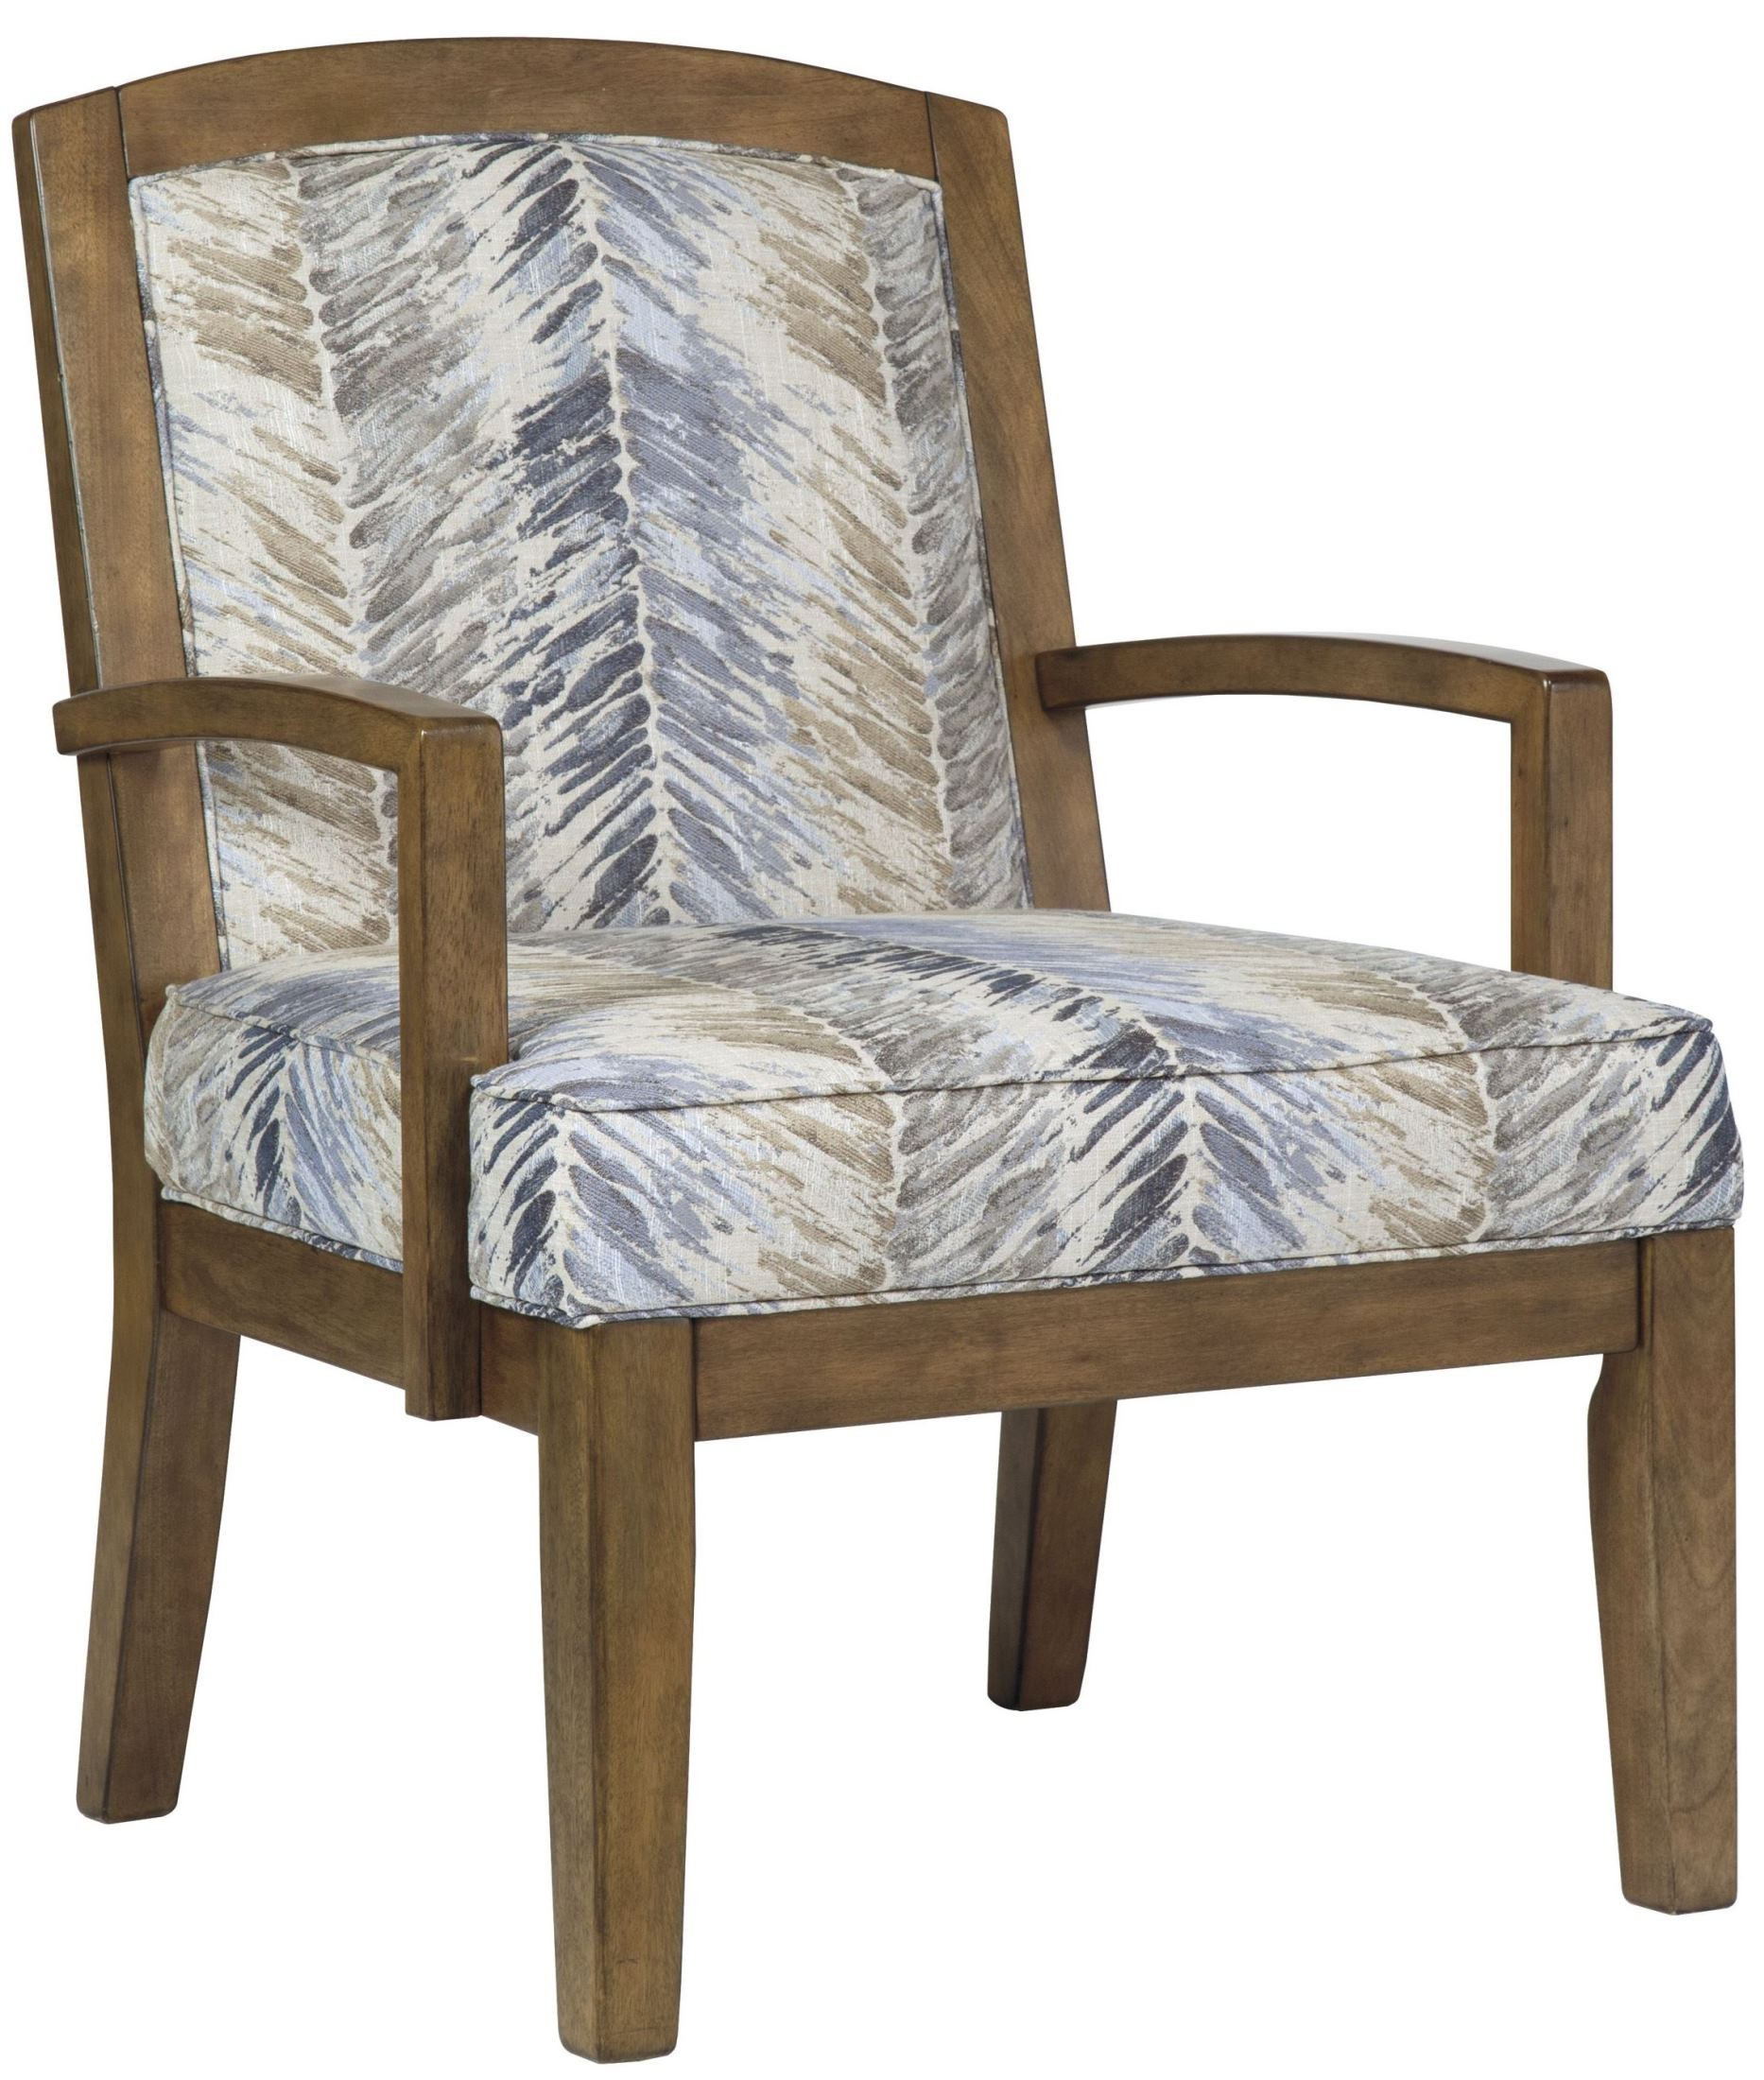 Mcm Multi Colored Accent Chair: Hillsway Multi Color Accent Chair, 3410460, Ashley